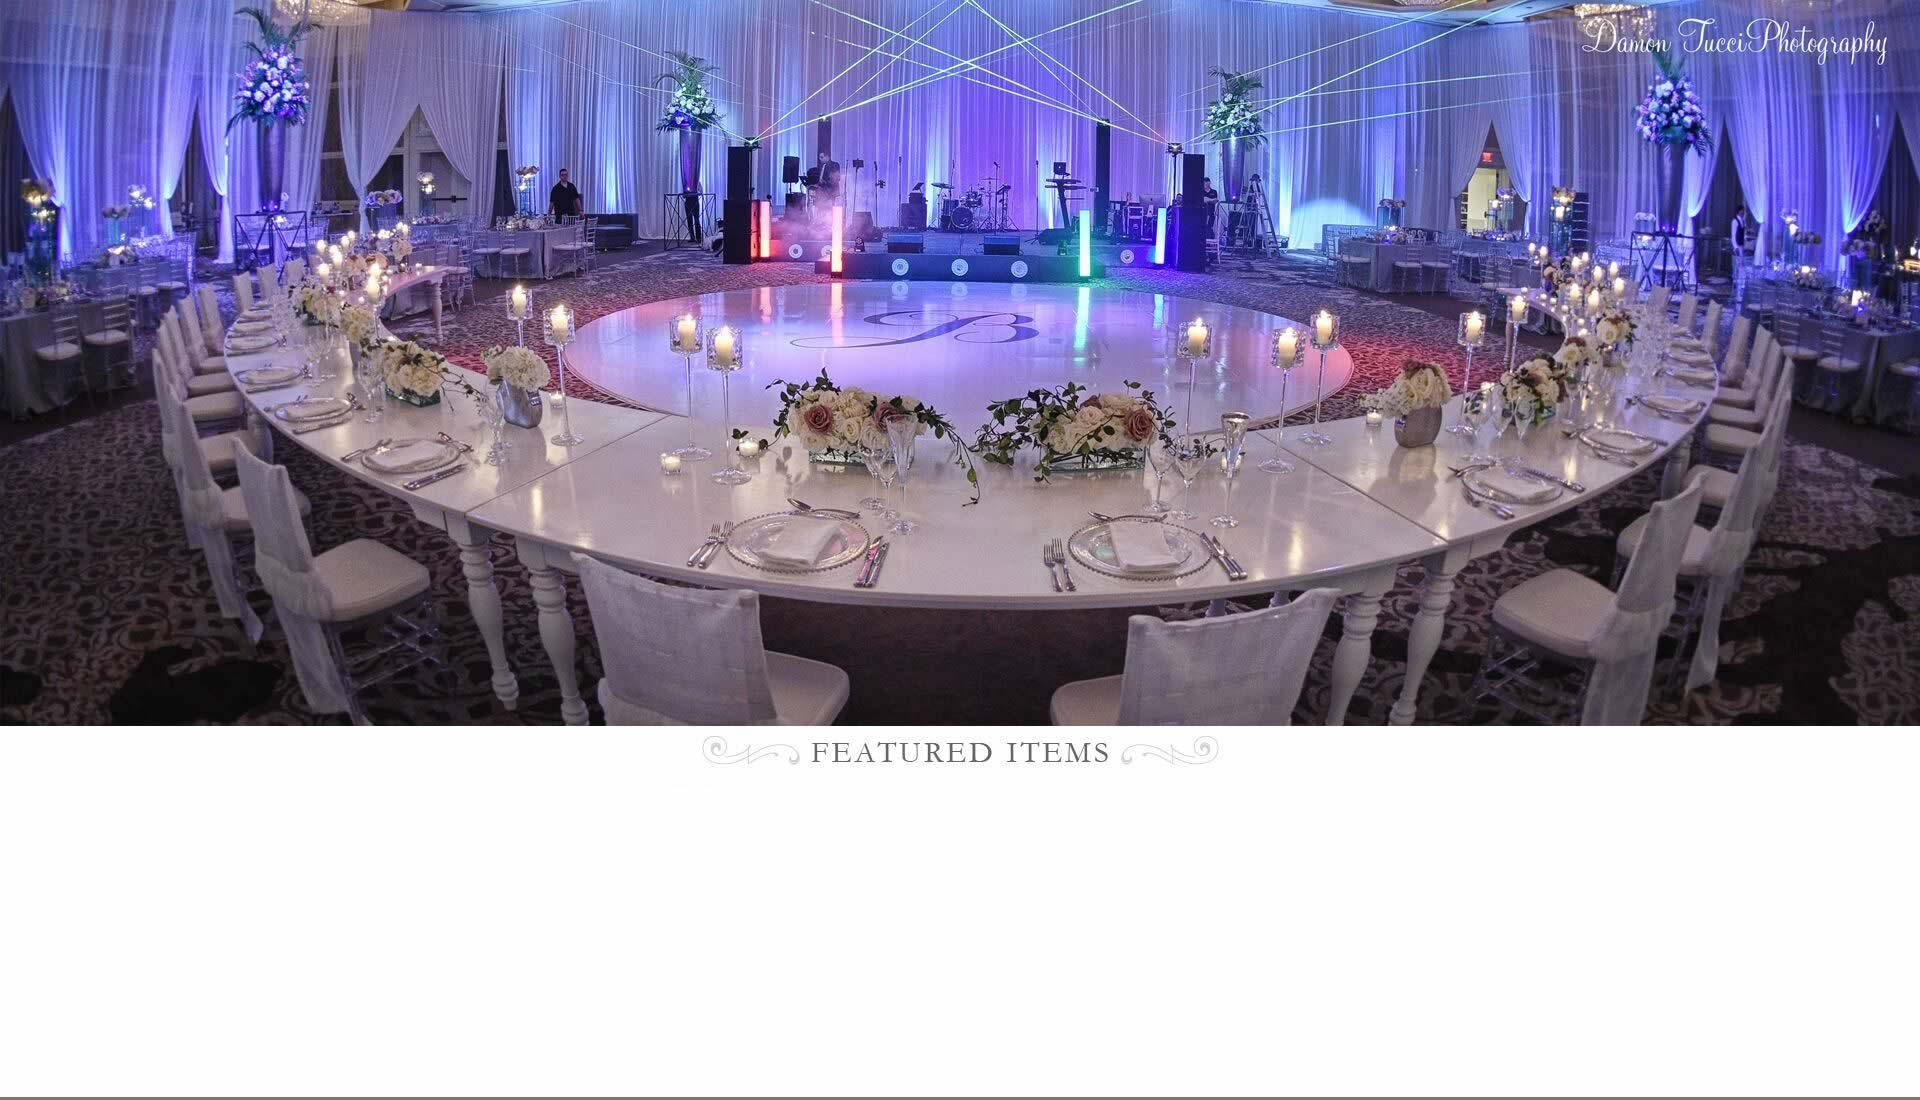 Wedding Chair Rentals Wedding Party And Event Rentals Available Orlando Fl